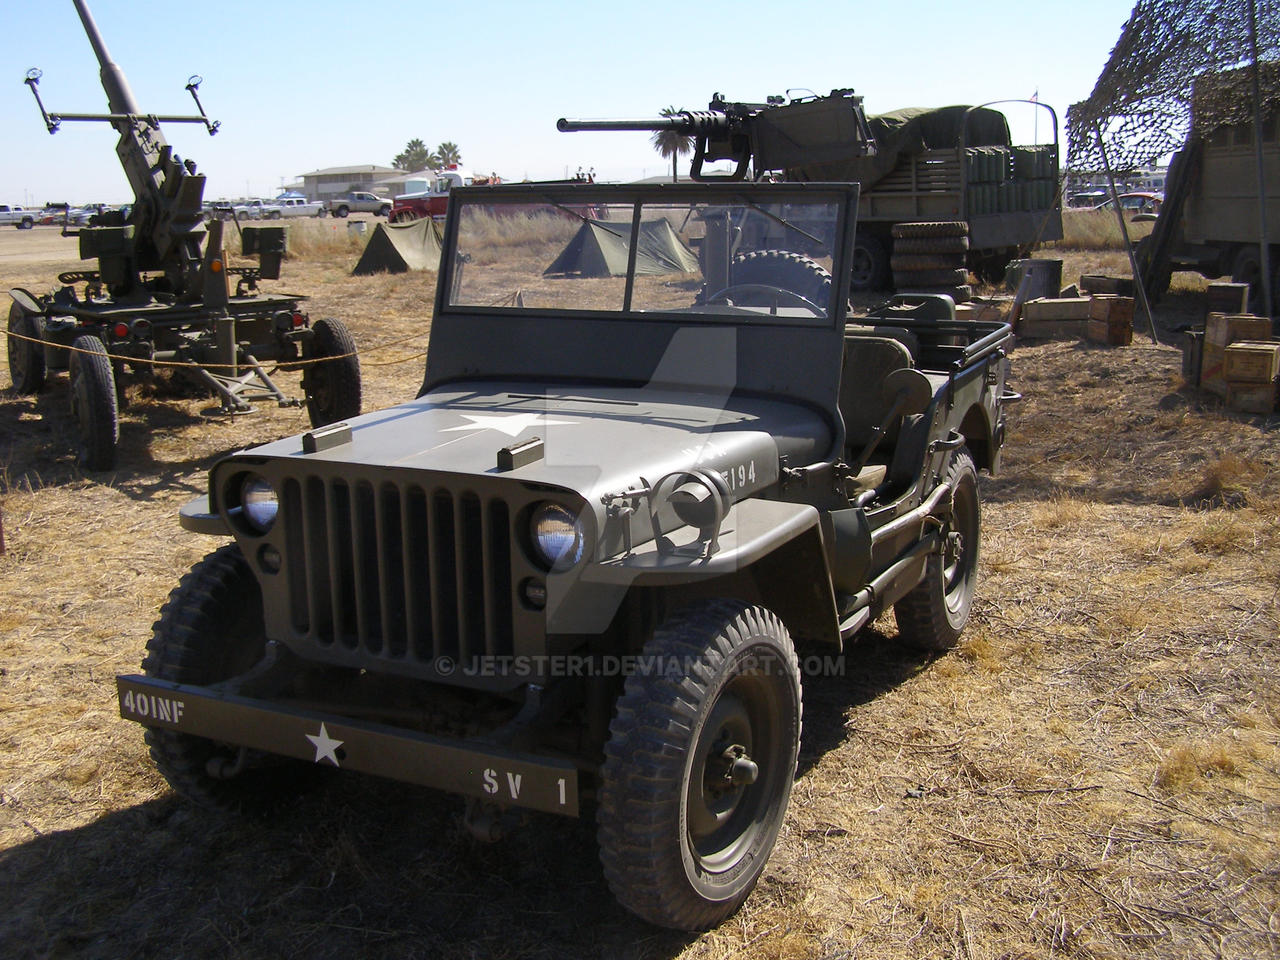 Jeep by Jetster1